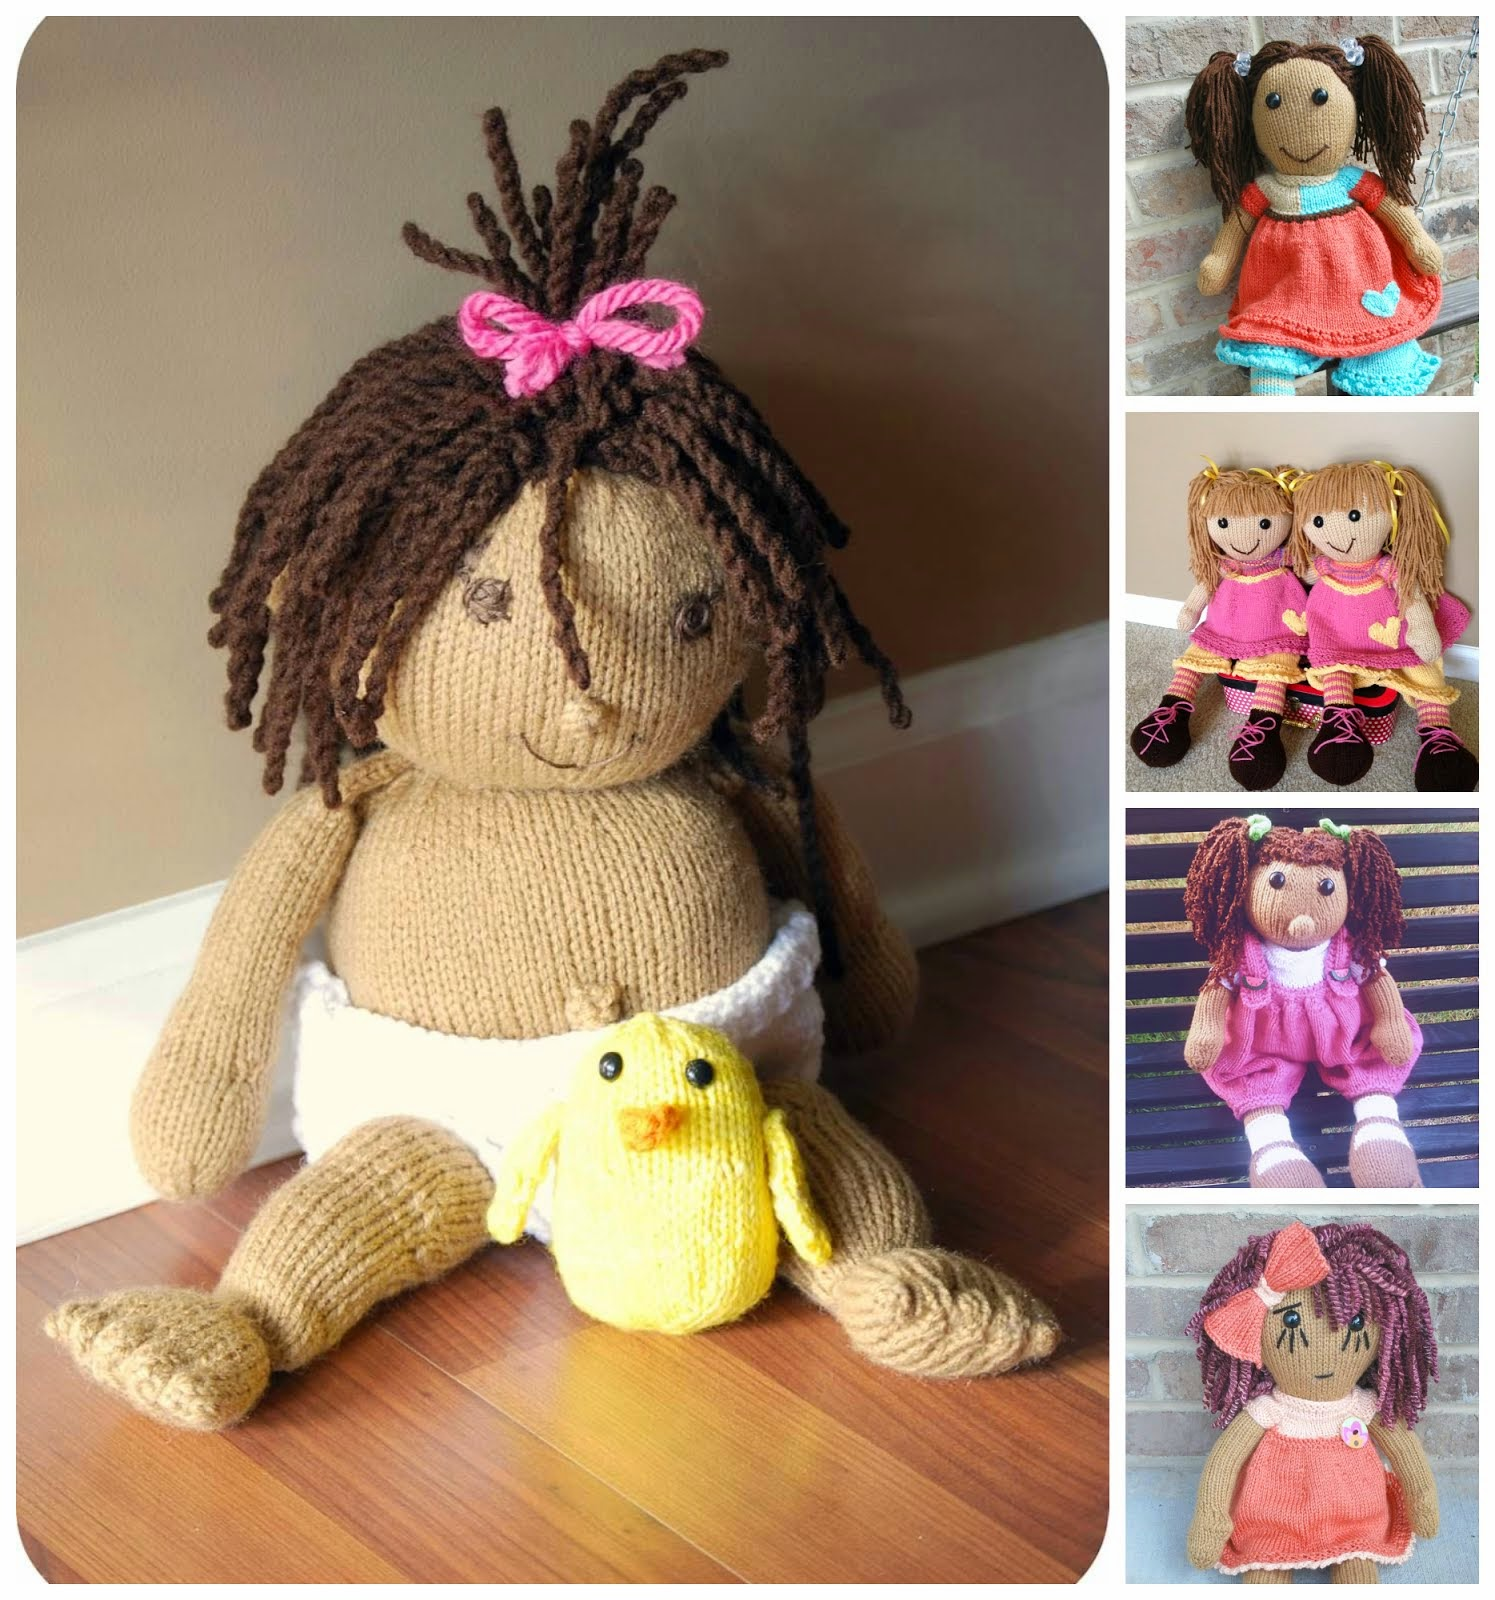 I Make Dolls - Unique Hand Knit Dolls